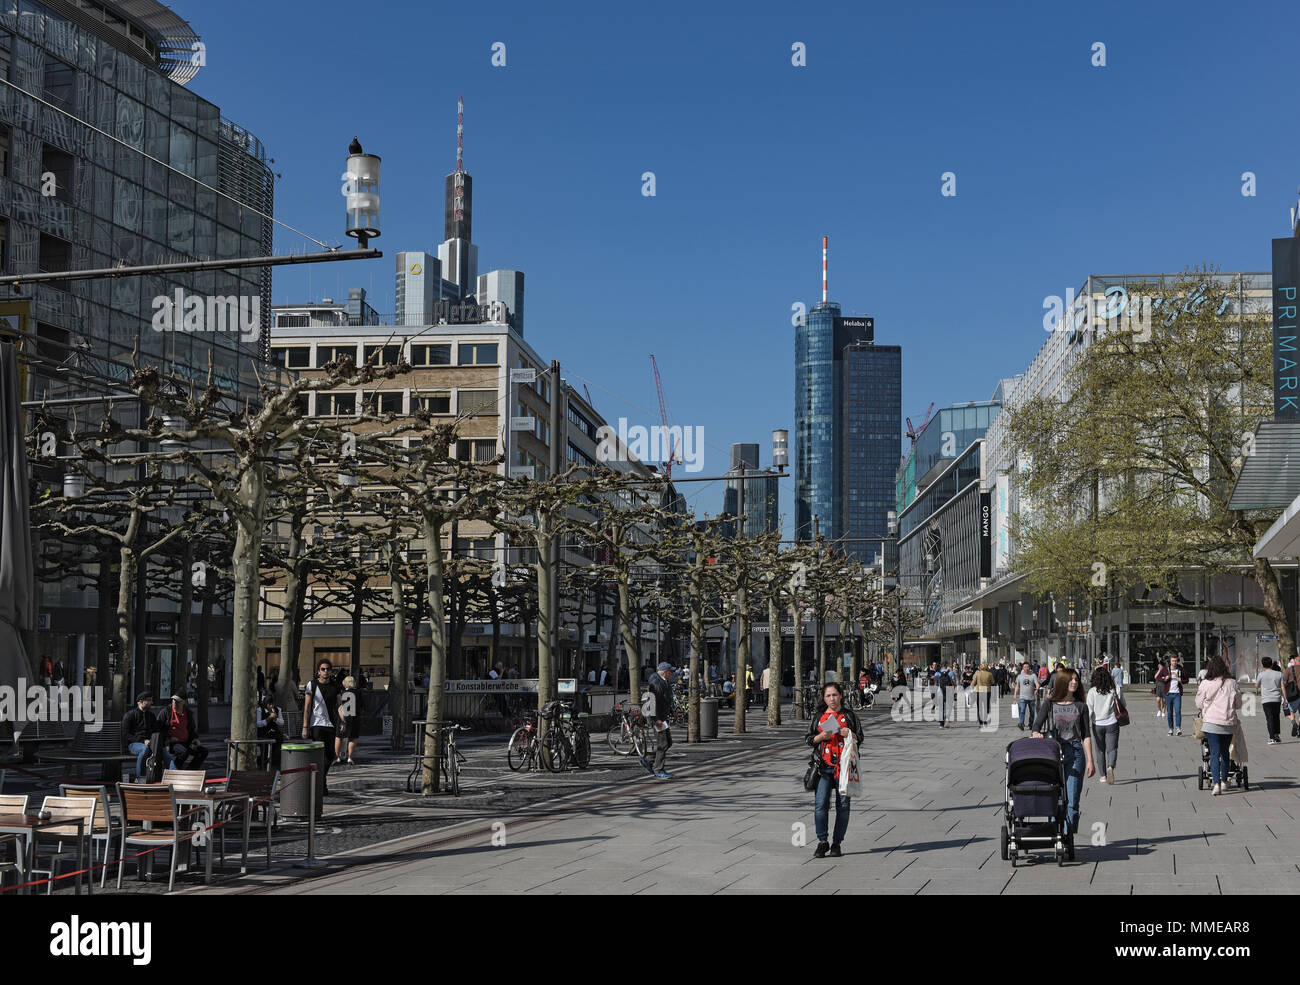 people walk in the morning on the pedestrian zone Zeil in frankfurt am main, germany - Stock Image